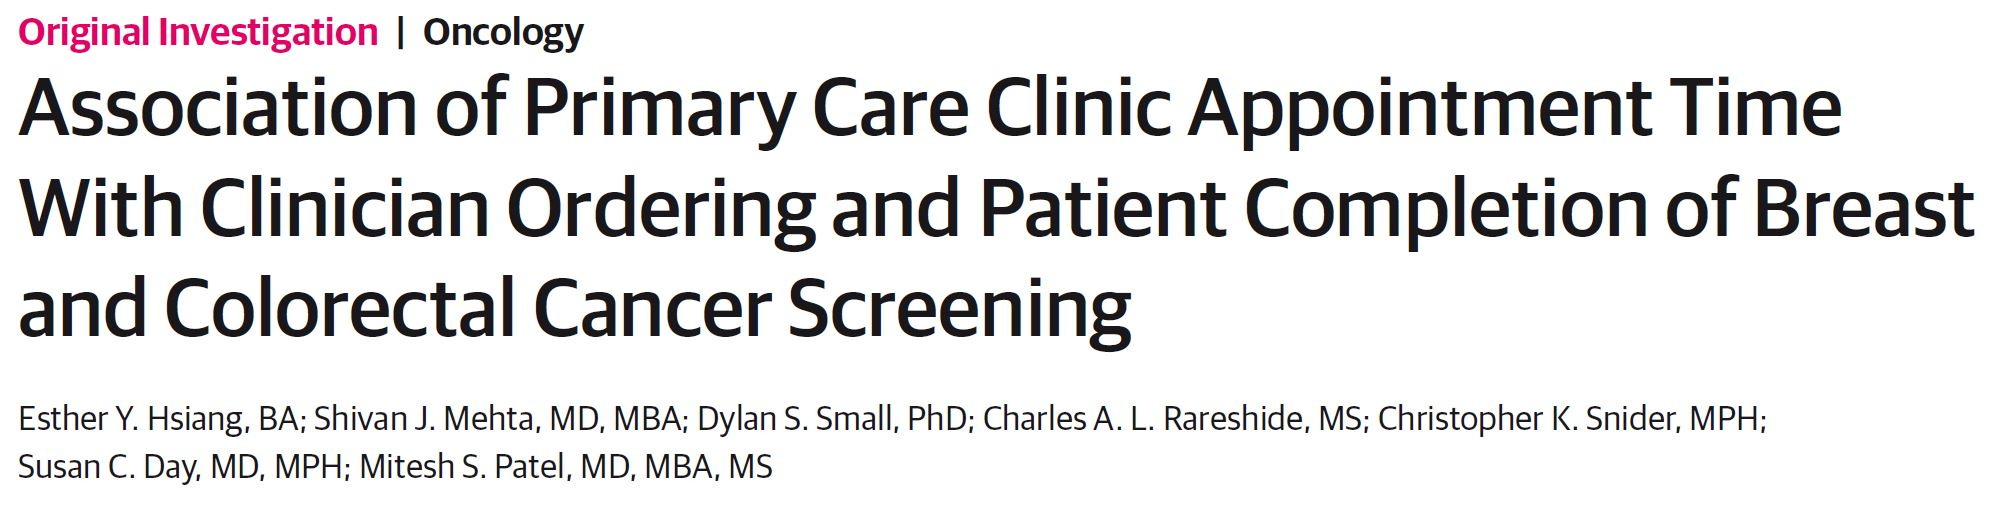 Association of Primary Care Clinic Appointment Time With Clinician Ordering and Patient Completion of Breast and Colorectal Cancer Screening